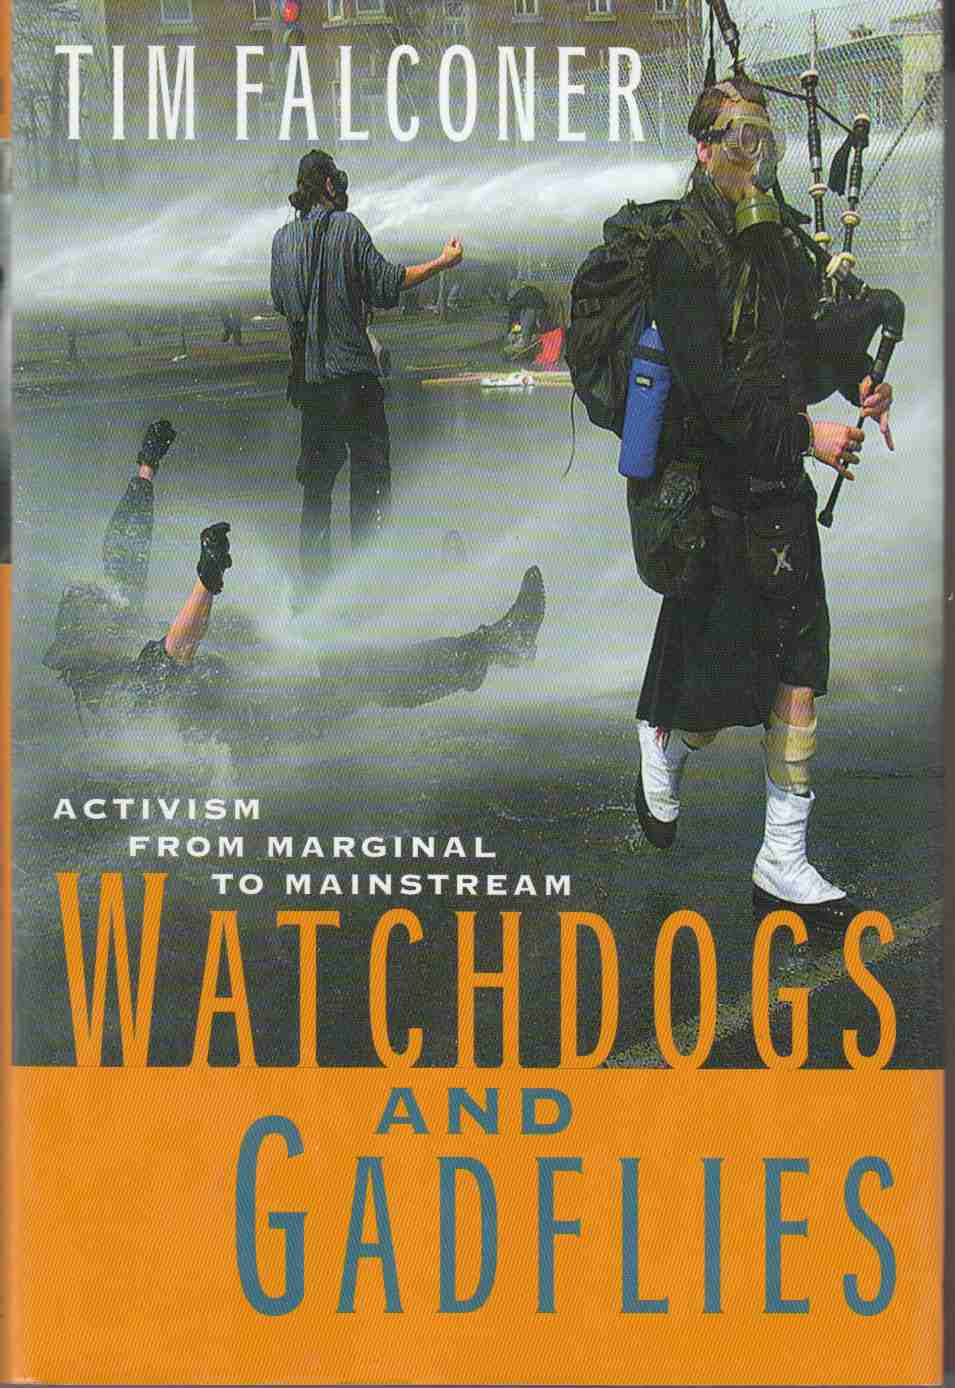 Image for Watchdogs and Gadflies Activism from Marginal to Mainstream